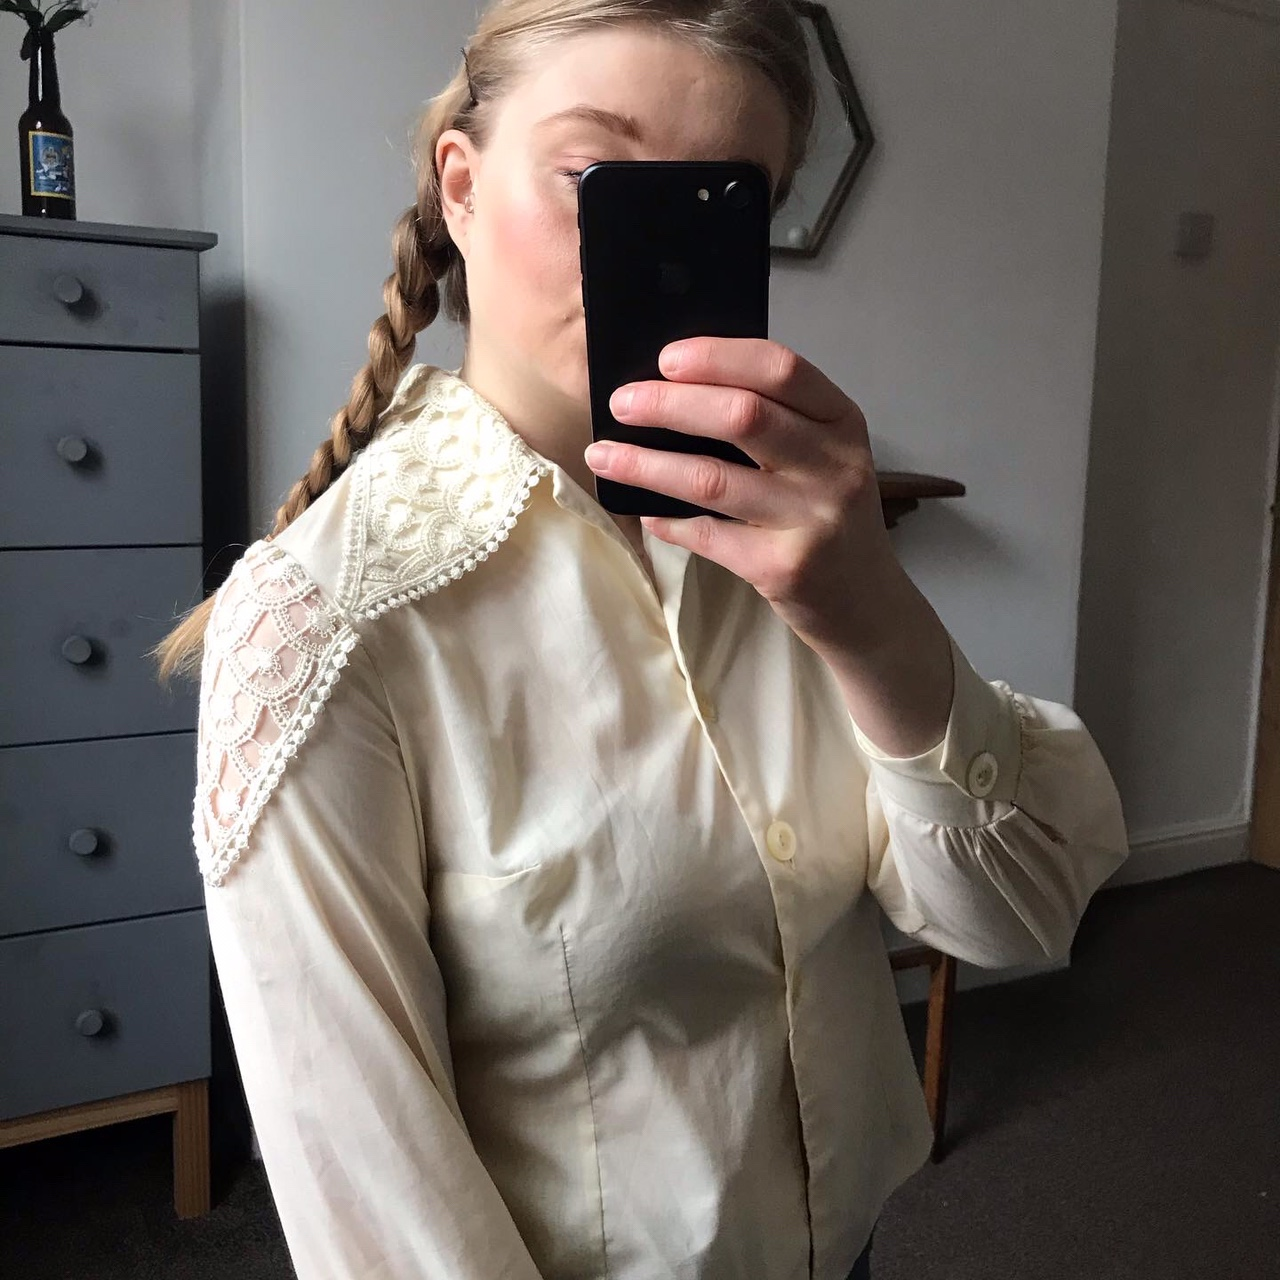 Product Image 1 - Stunning cream blouse with statement